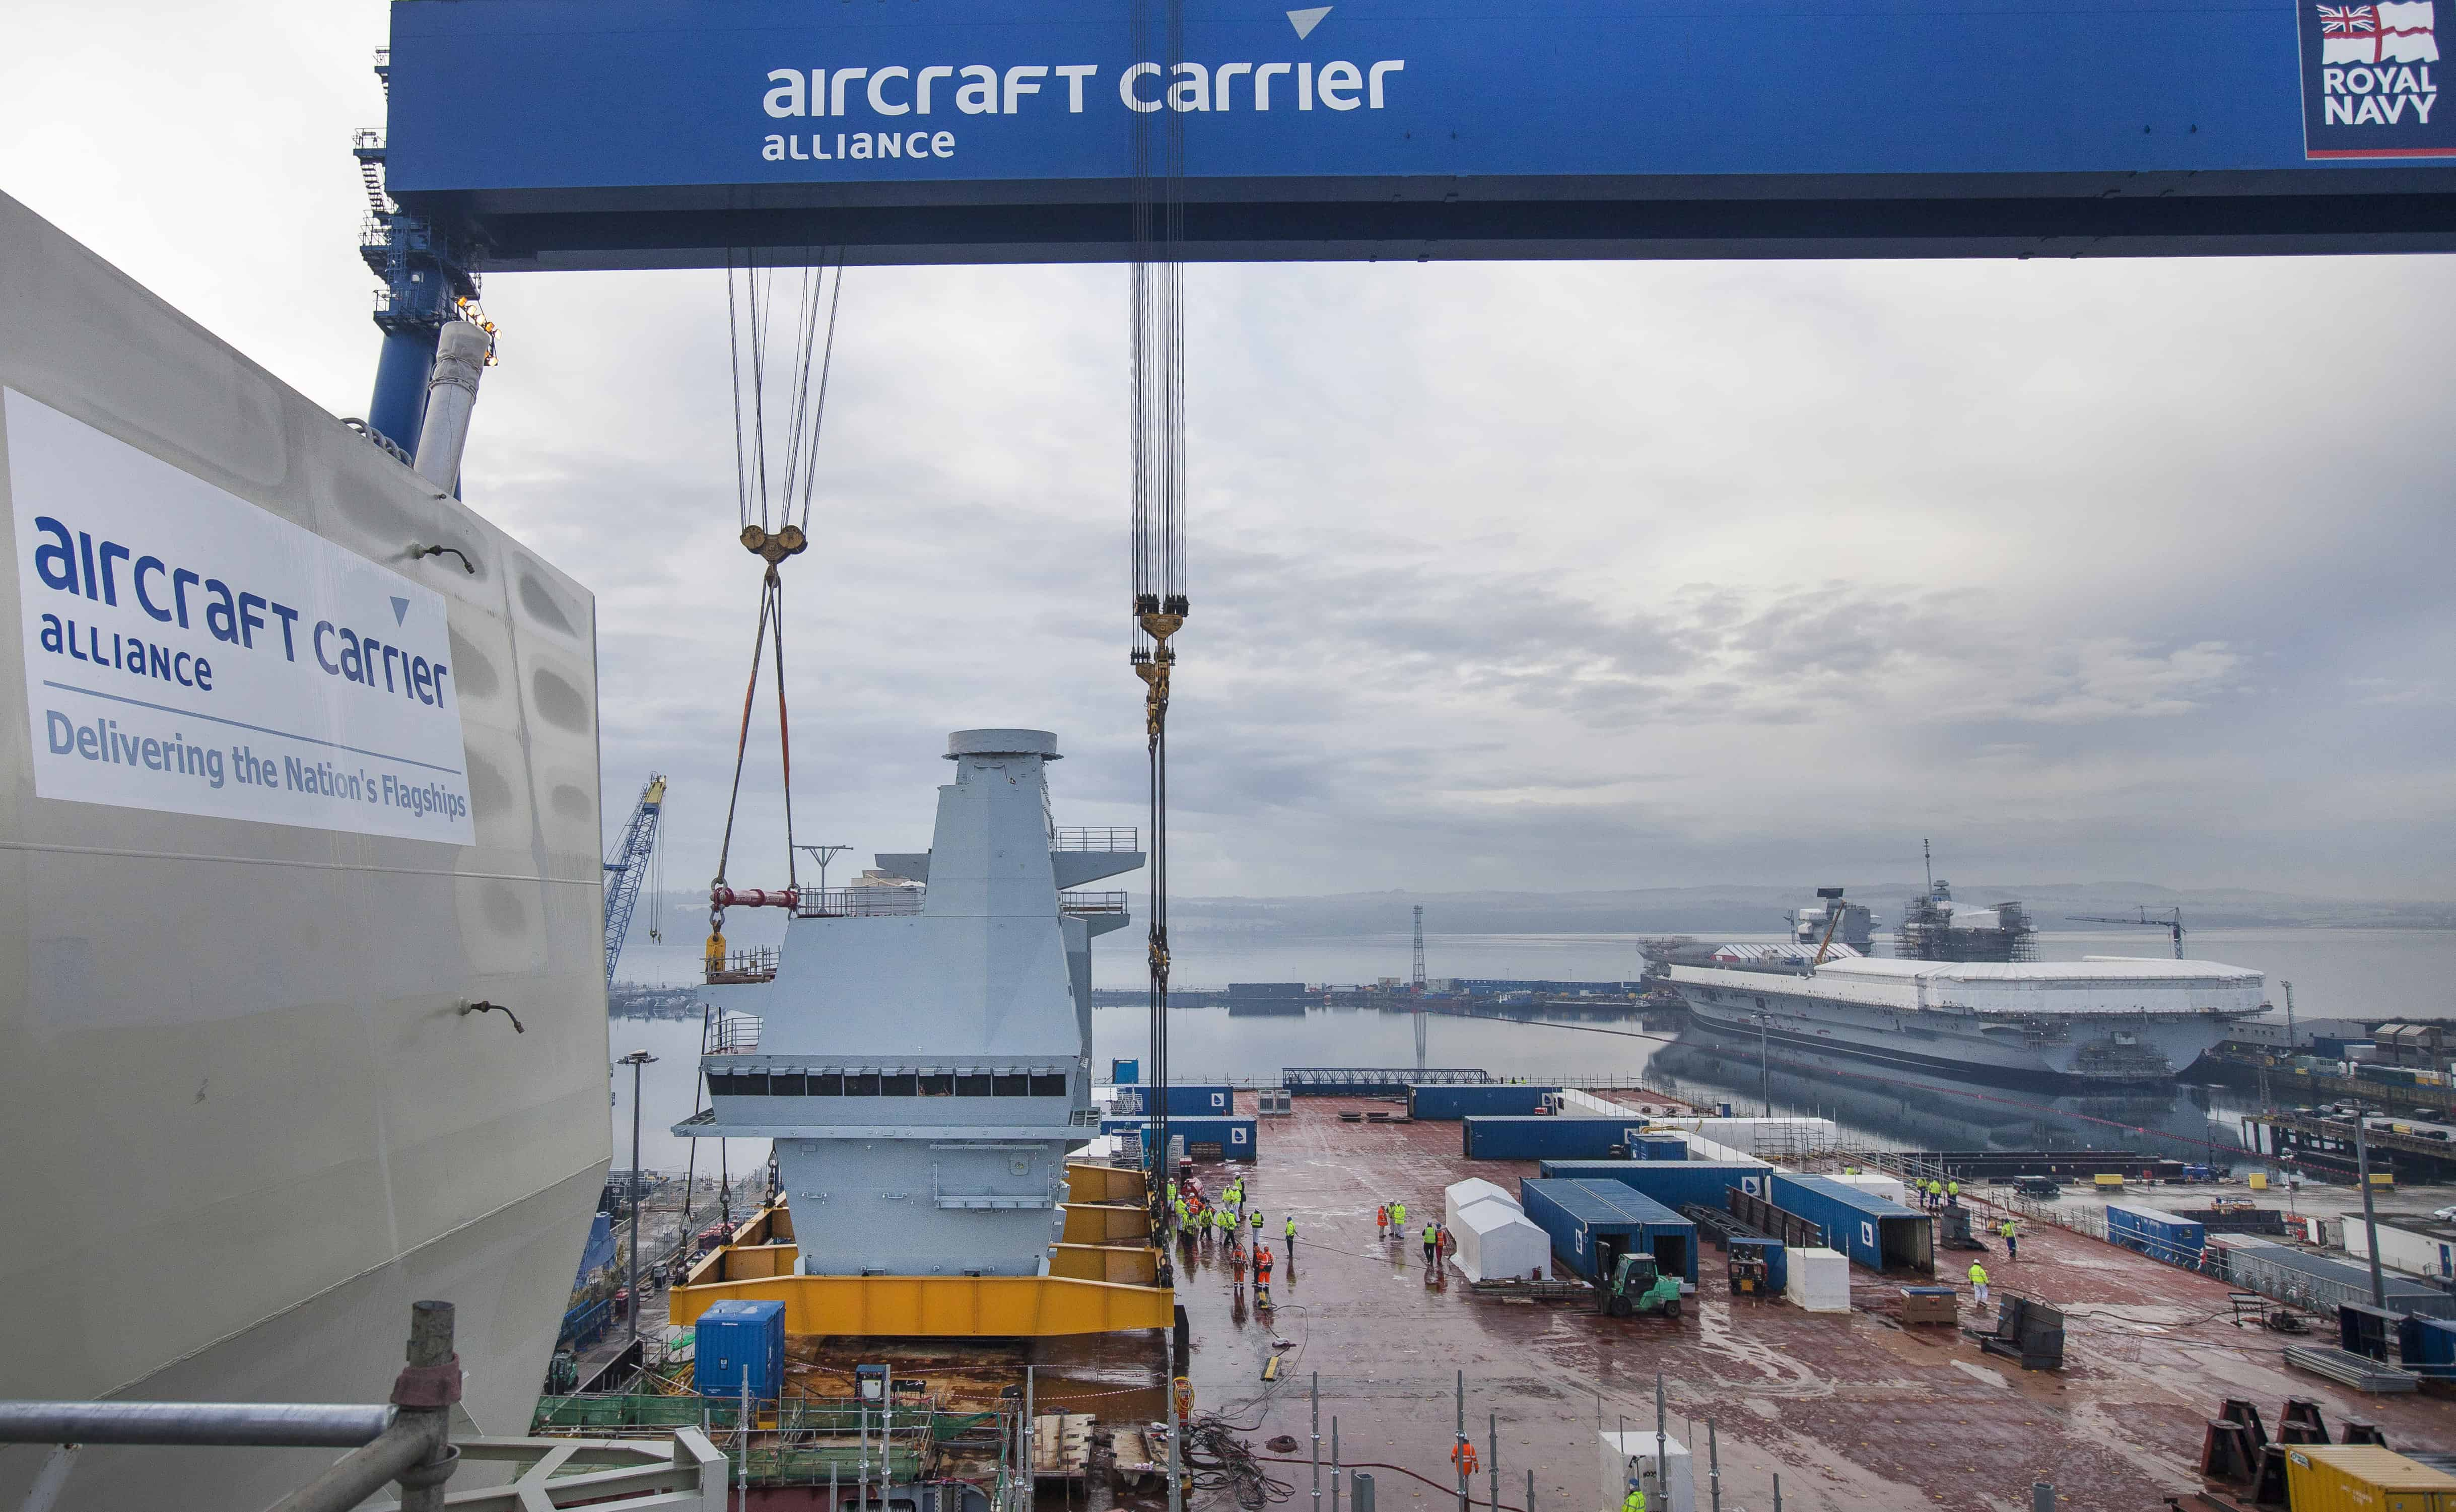 Prince of Wales Aircraft Carrier Construction Rosyth Naval Dockyard, Friday 8 January  The Aft Island, which will control aircraft operations aboard HMS PRINCE OF WALES, has been lifted on to the deck of the ship. Rosyth, UK: HMS QUEEN ELIZABETH and HMS PRINCE OF WALES will be the Royal Navy's largest and most advanced ever warships and were constructed in blocks in different shipyards throughout the UK. The final section being delivered, known as the Aft Island, weighs 750 tonnes and will control aircraft operations aboard the second aircraft carrier, HMS PRINCE OF WALES. The Aft Island, which will control aircraft operations aboard HMS PRINCE OF WALES, has been lifted on to the deck of the ship. Photo Credit Drew Farrell / BAE Systems First Use Supplied Courtesy of BAE Systems For Further Details : Please contact Drew Farrell (photographer) T : 07721735041 Sofia Naz ACA Communications Associate T 01622 778533 | M 07525078502 | sofia.naz@baesystems.com www.baesystems.com